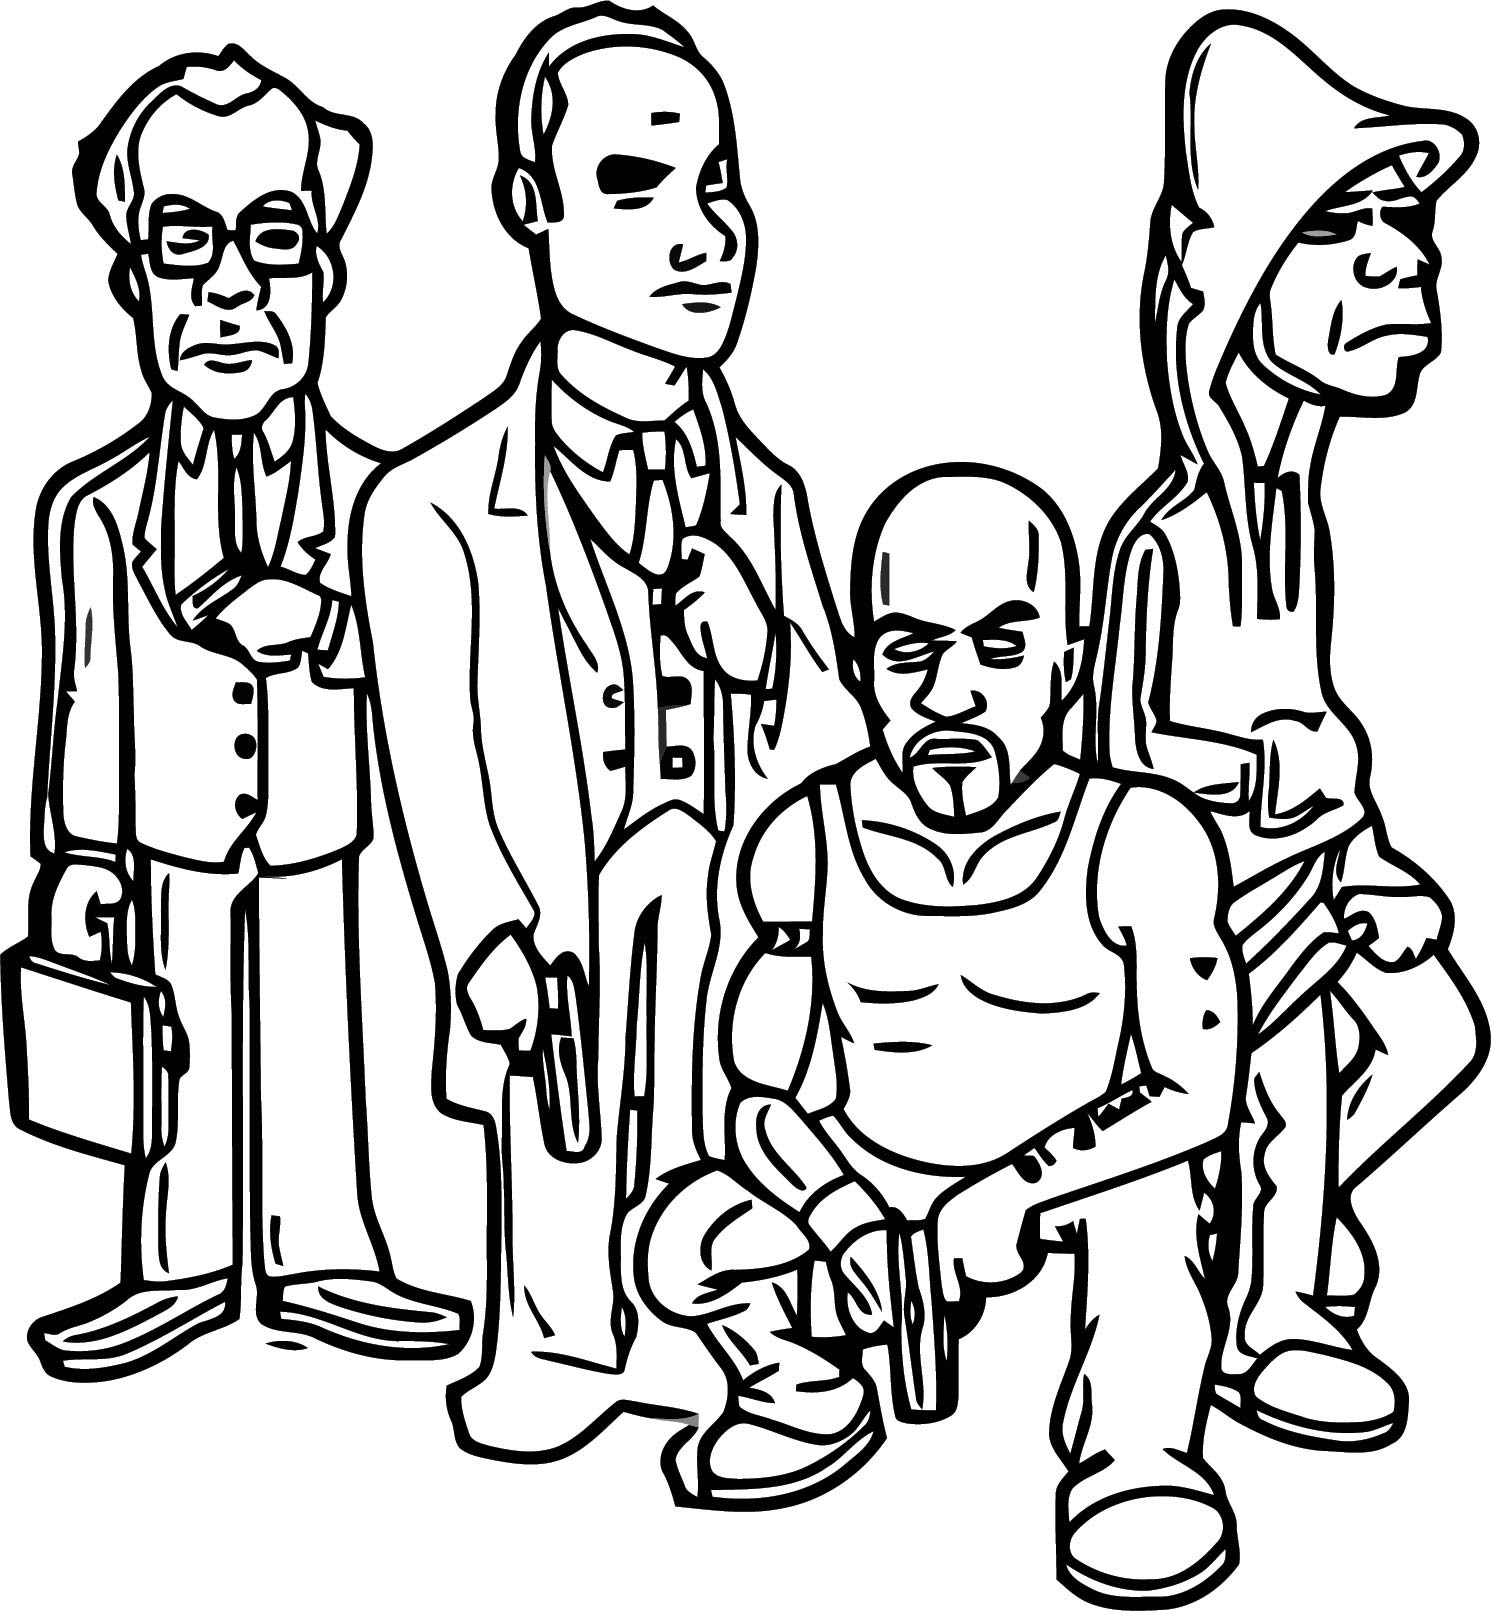 Computer Game Character Designs Cartoonized Coloring Page ...